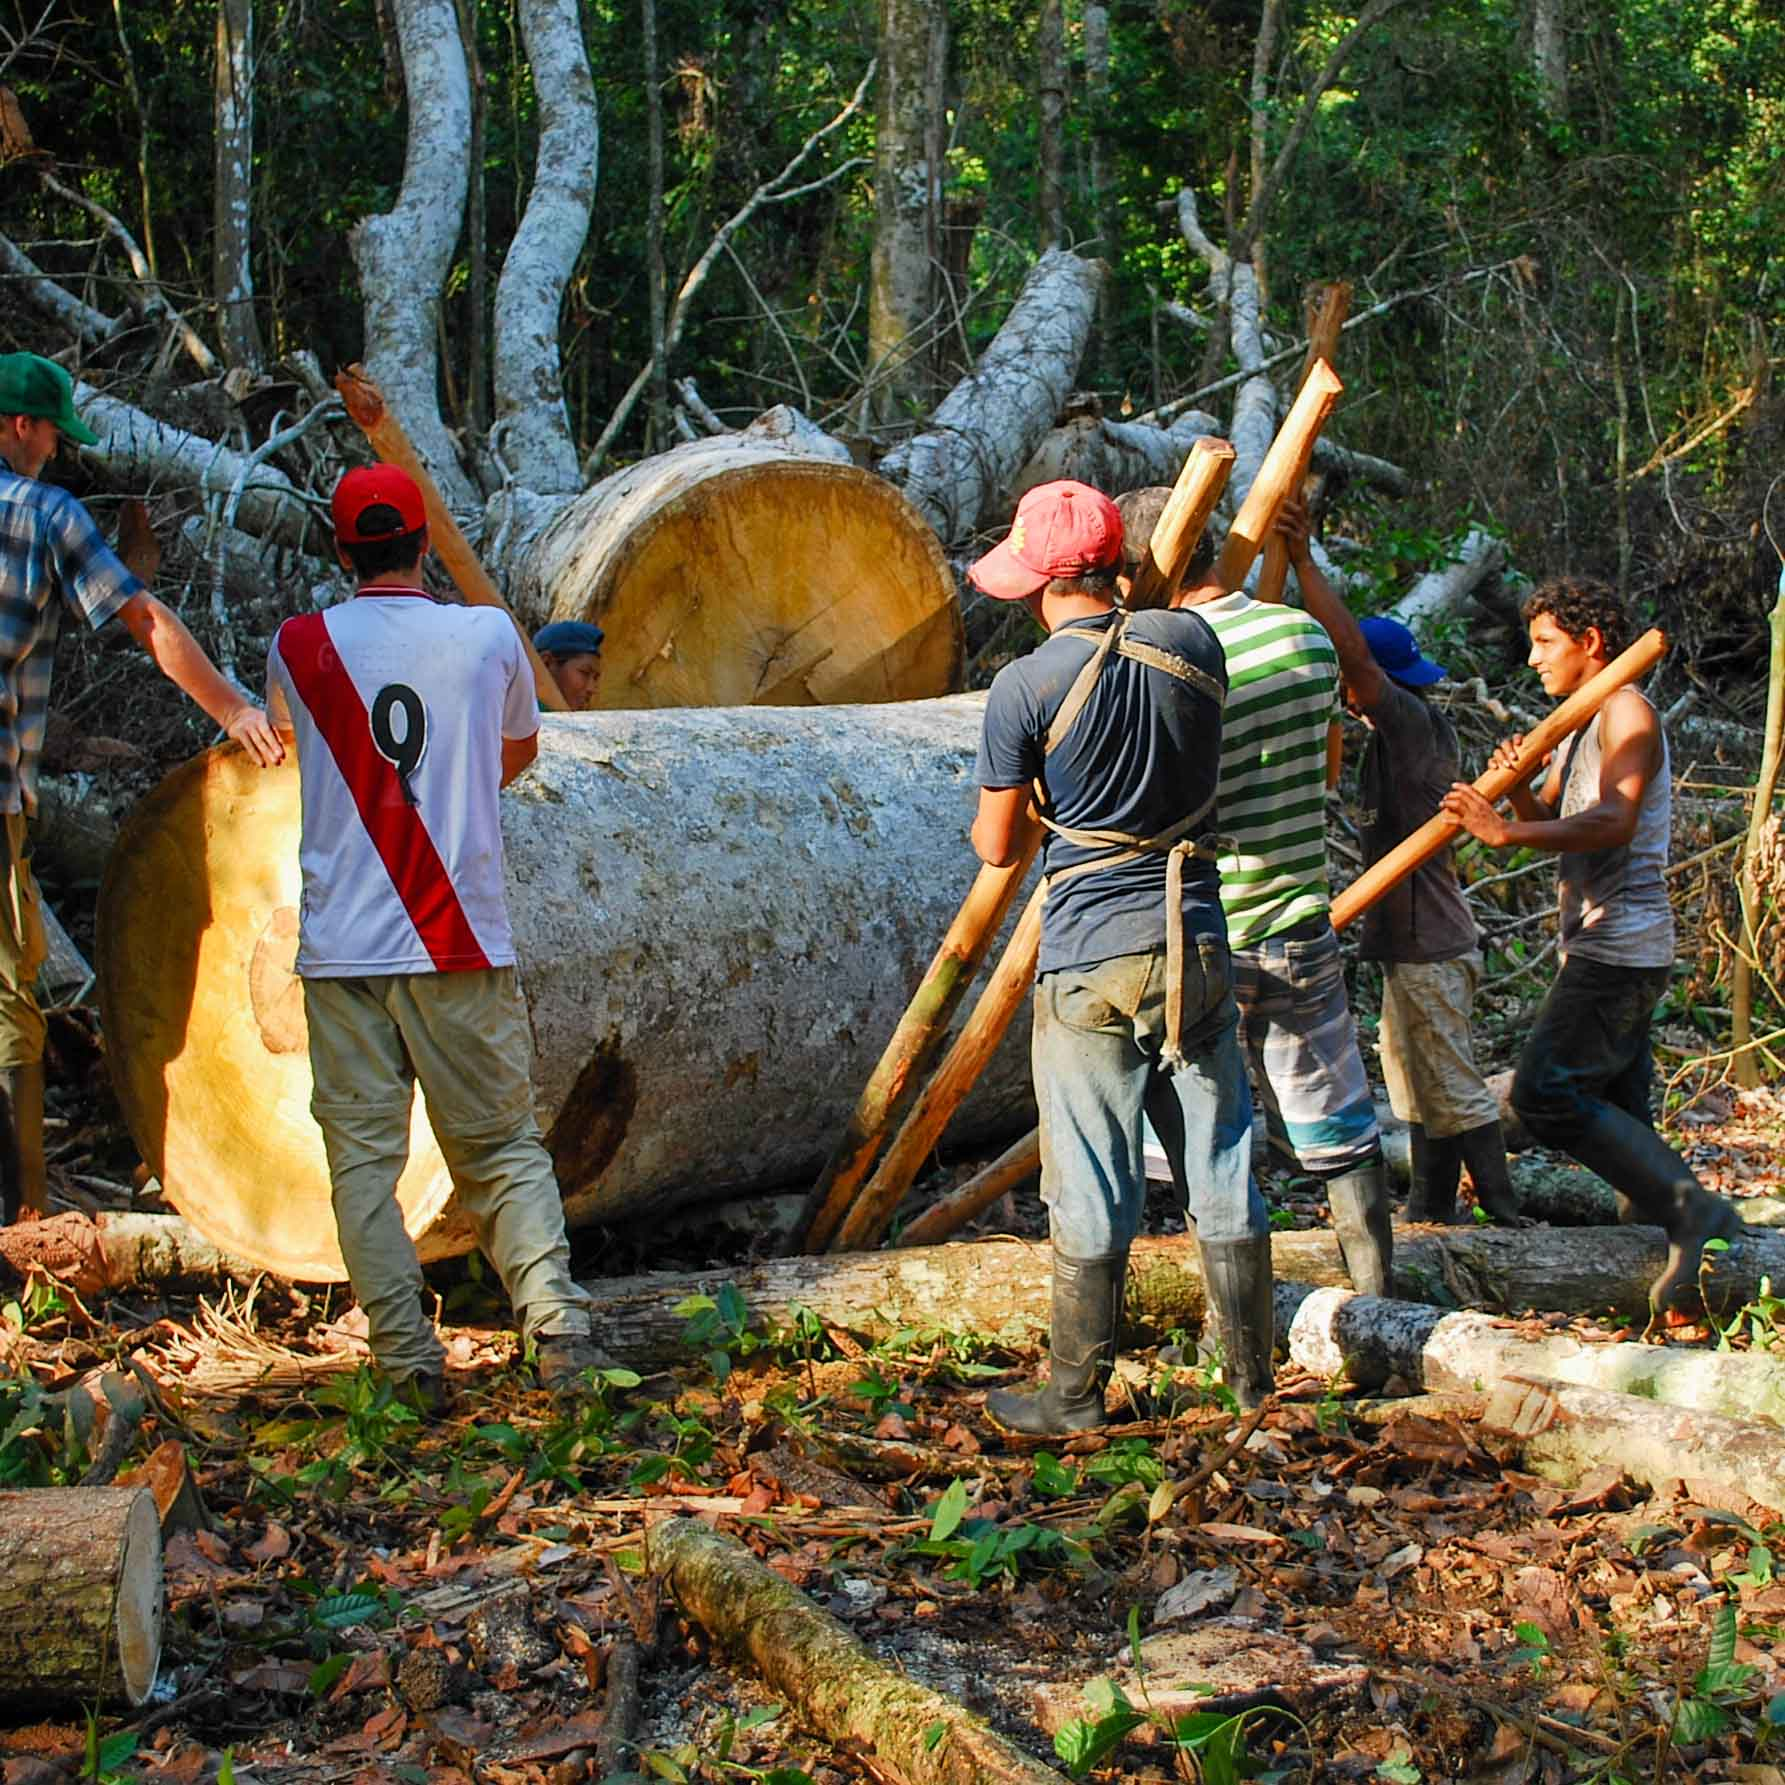 Logging involves backbreaking manual labor in unregulated conditions for little to no pay or even debt